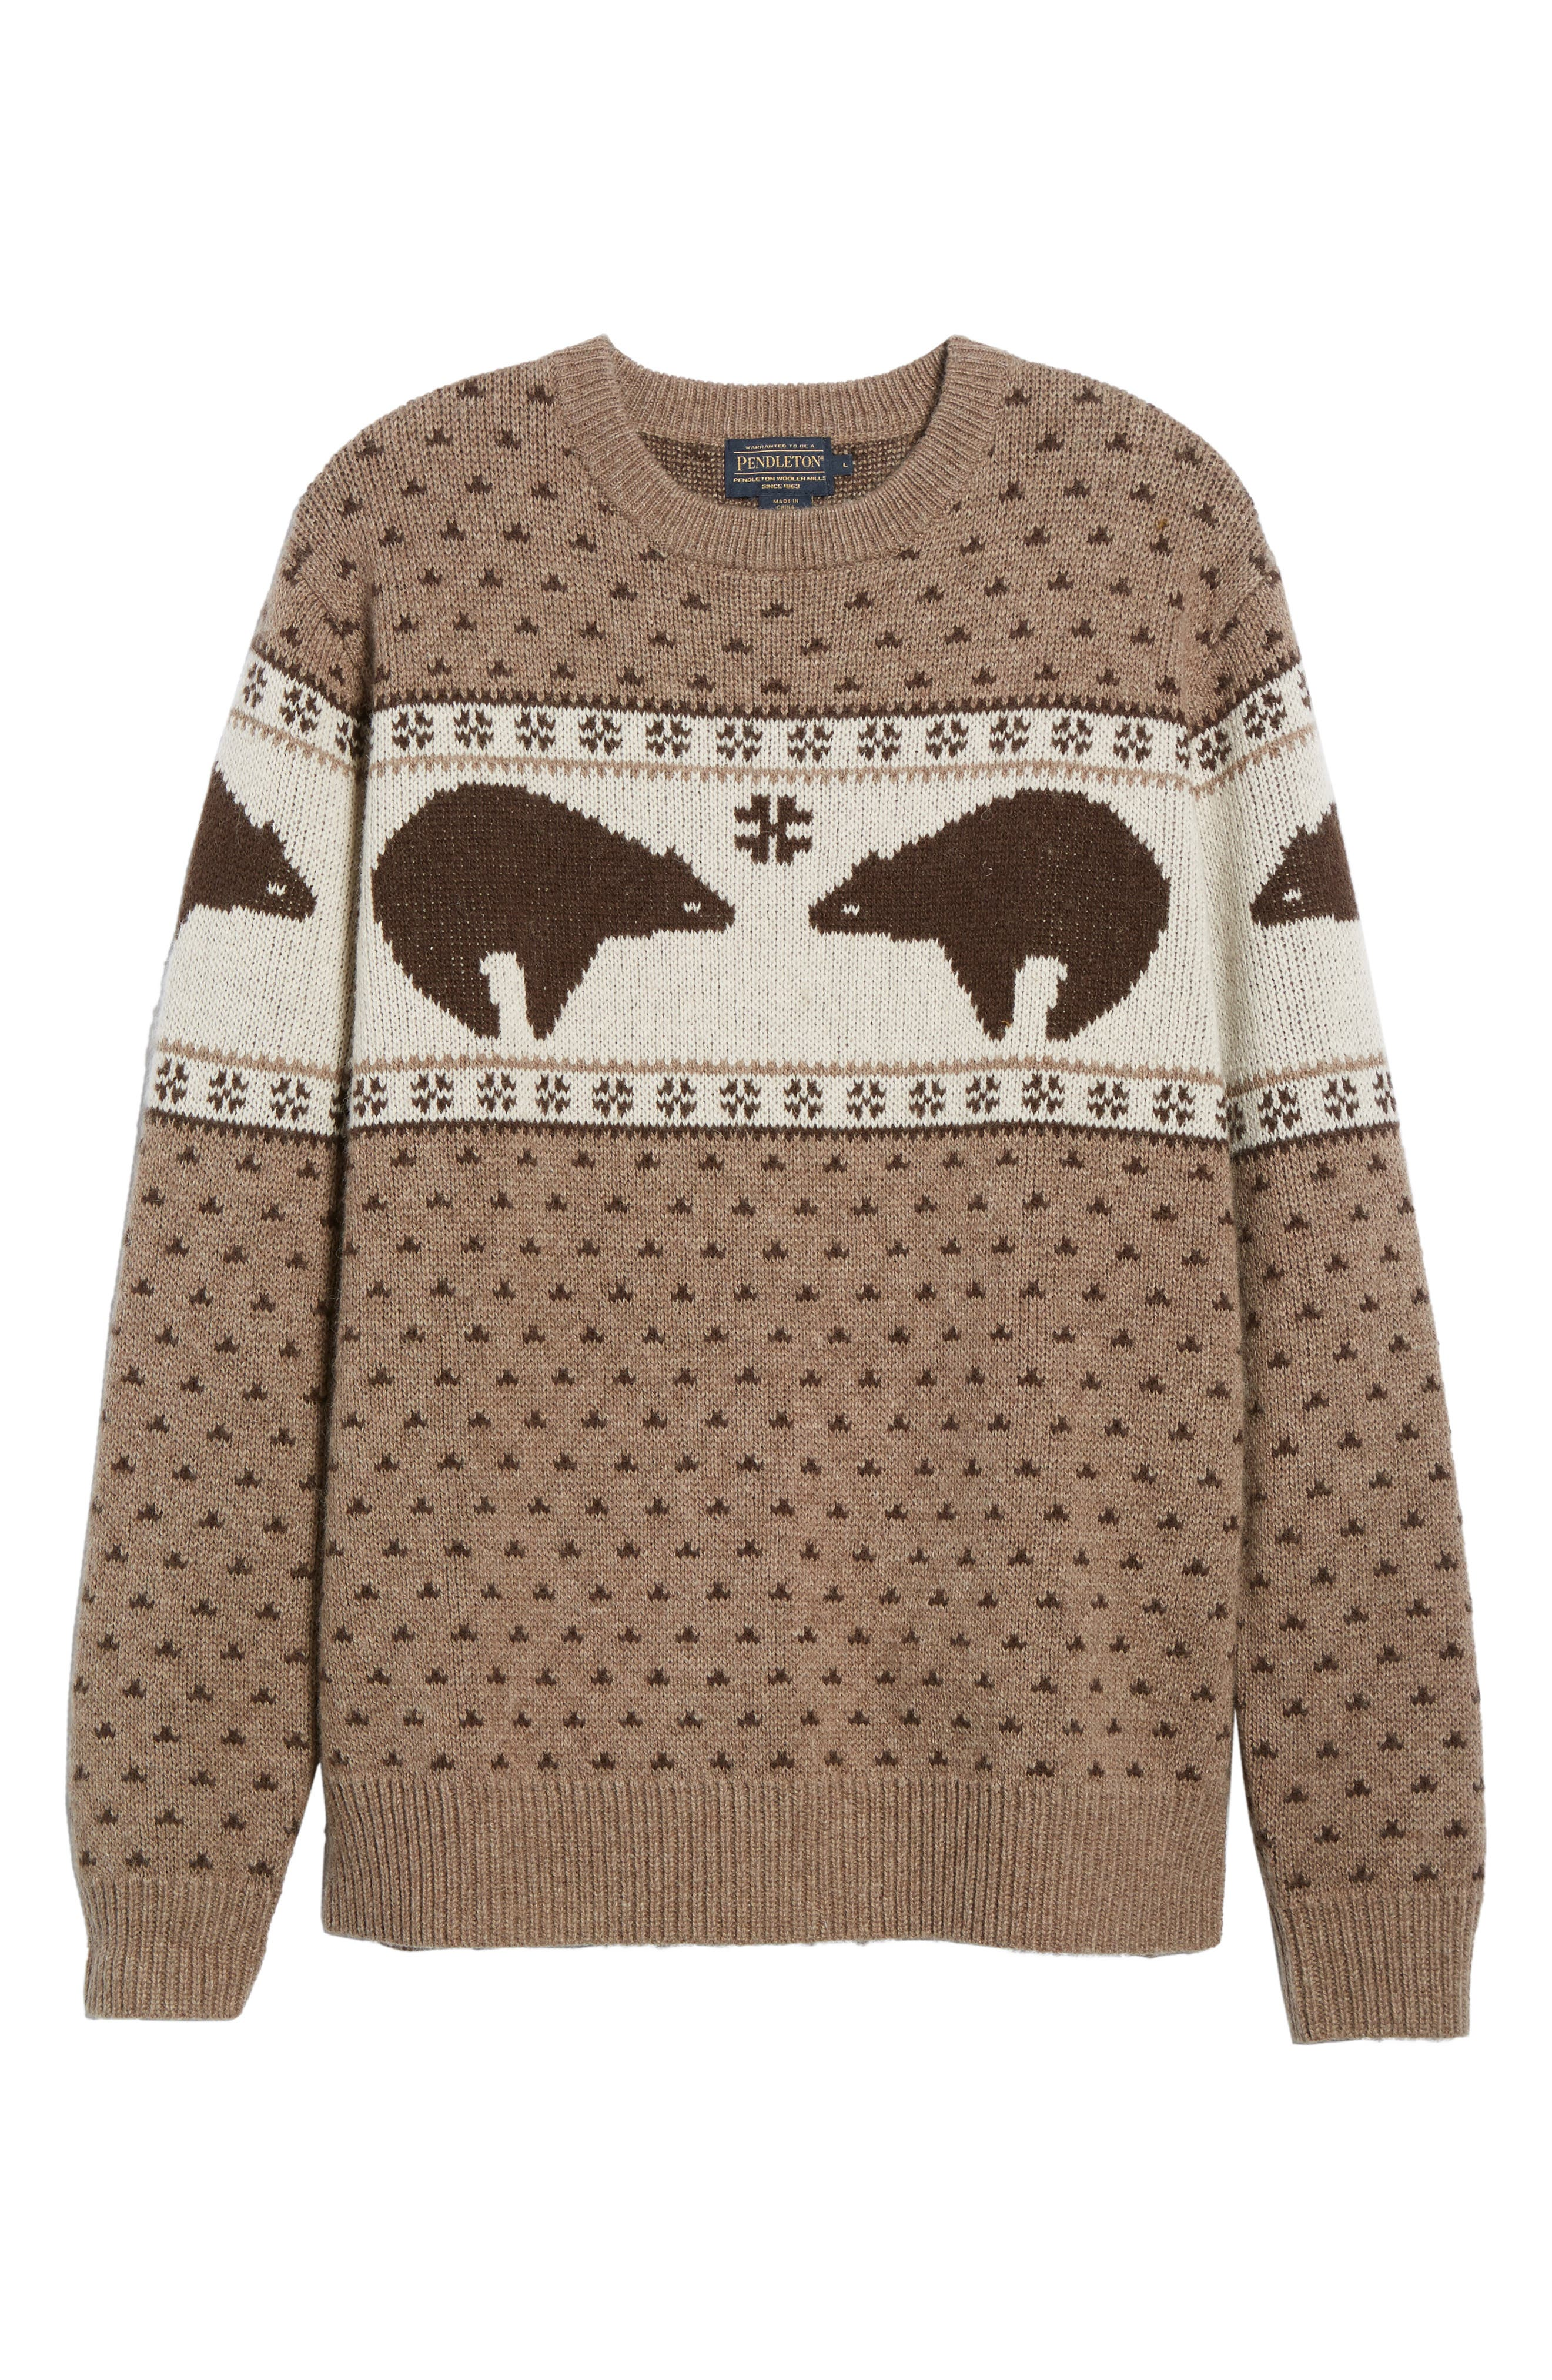 Bear Sweater,                             Alternate thumbnail 6, color,                             250